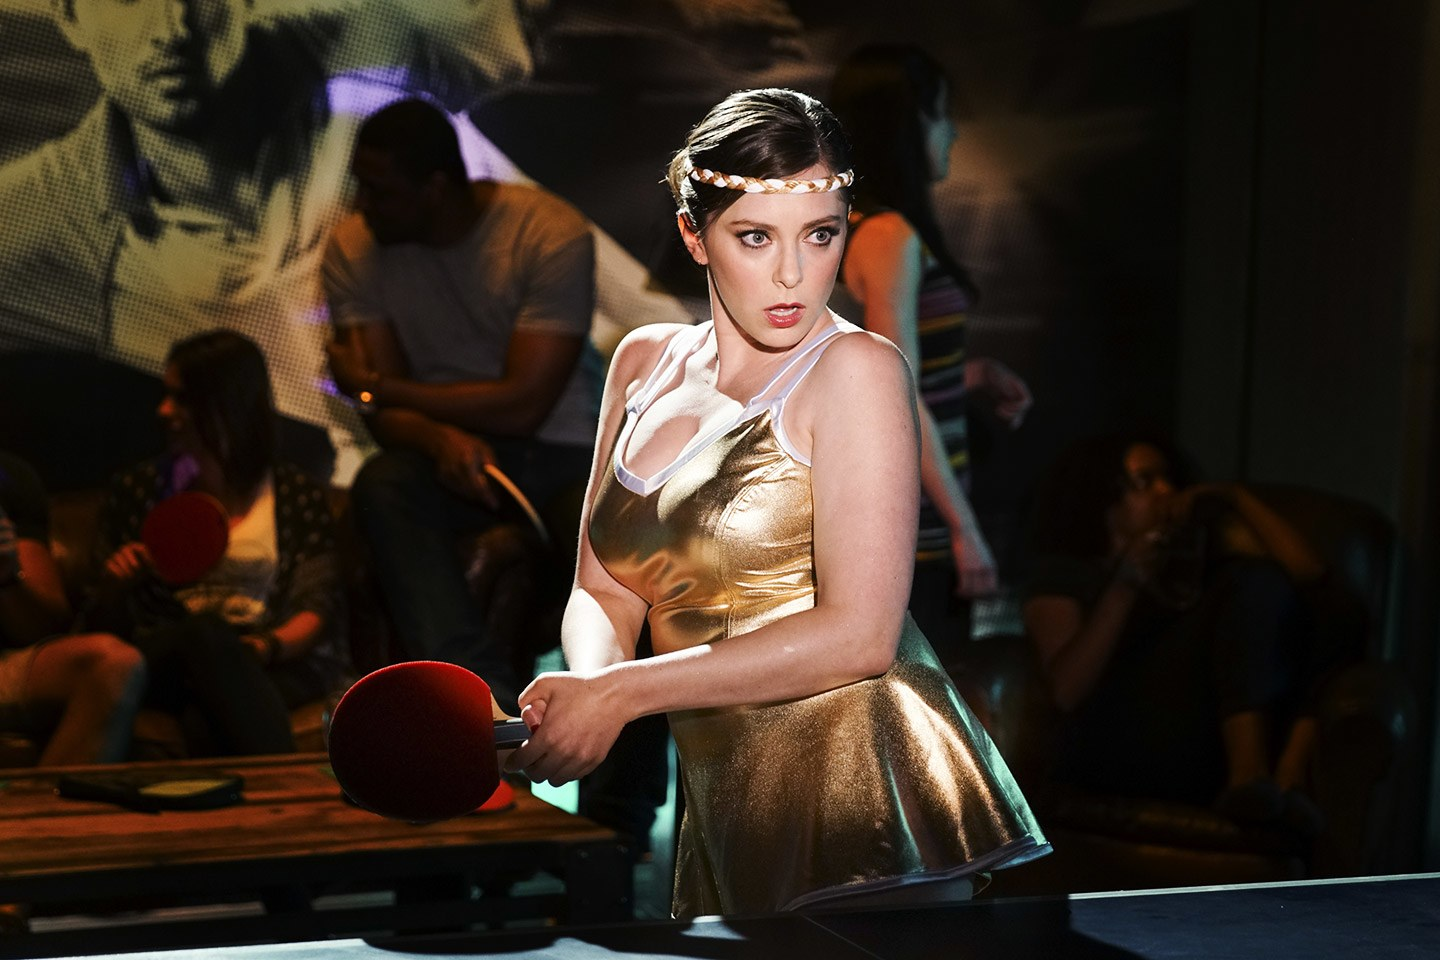 a photo of actress Rachel Bloom, a white woman with brown hair, wearing a gold dress and a gold headband